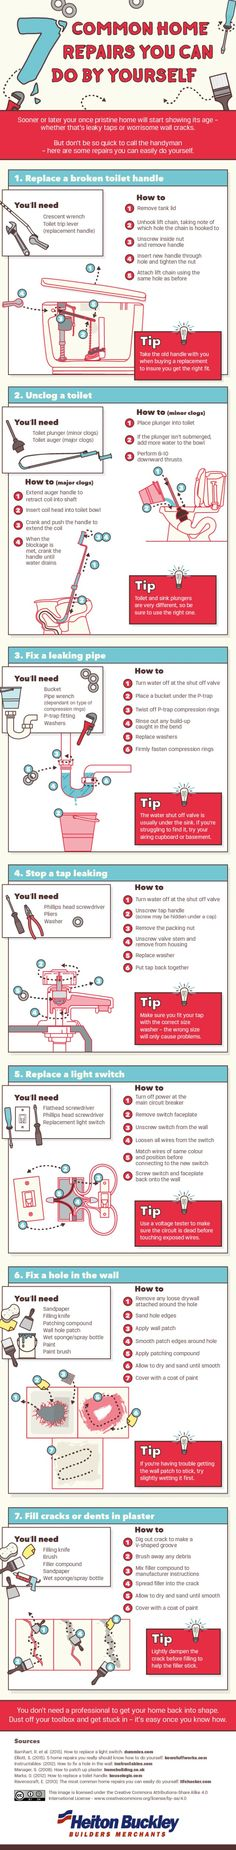 This is a fantastic infographic that showcases 7 common home repairs that you too can do yourself. Because all home need care and attention. If you think you have the skills to perform some of these projects yourself, here are some tips on how to get thes Home Improvement Projects, Home Projects, Home Fix, Diy Home Repair, Home Ownership, Home Repairs, Do It Yourself Home, Home Hacks, Clean House